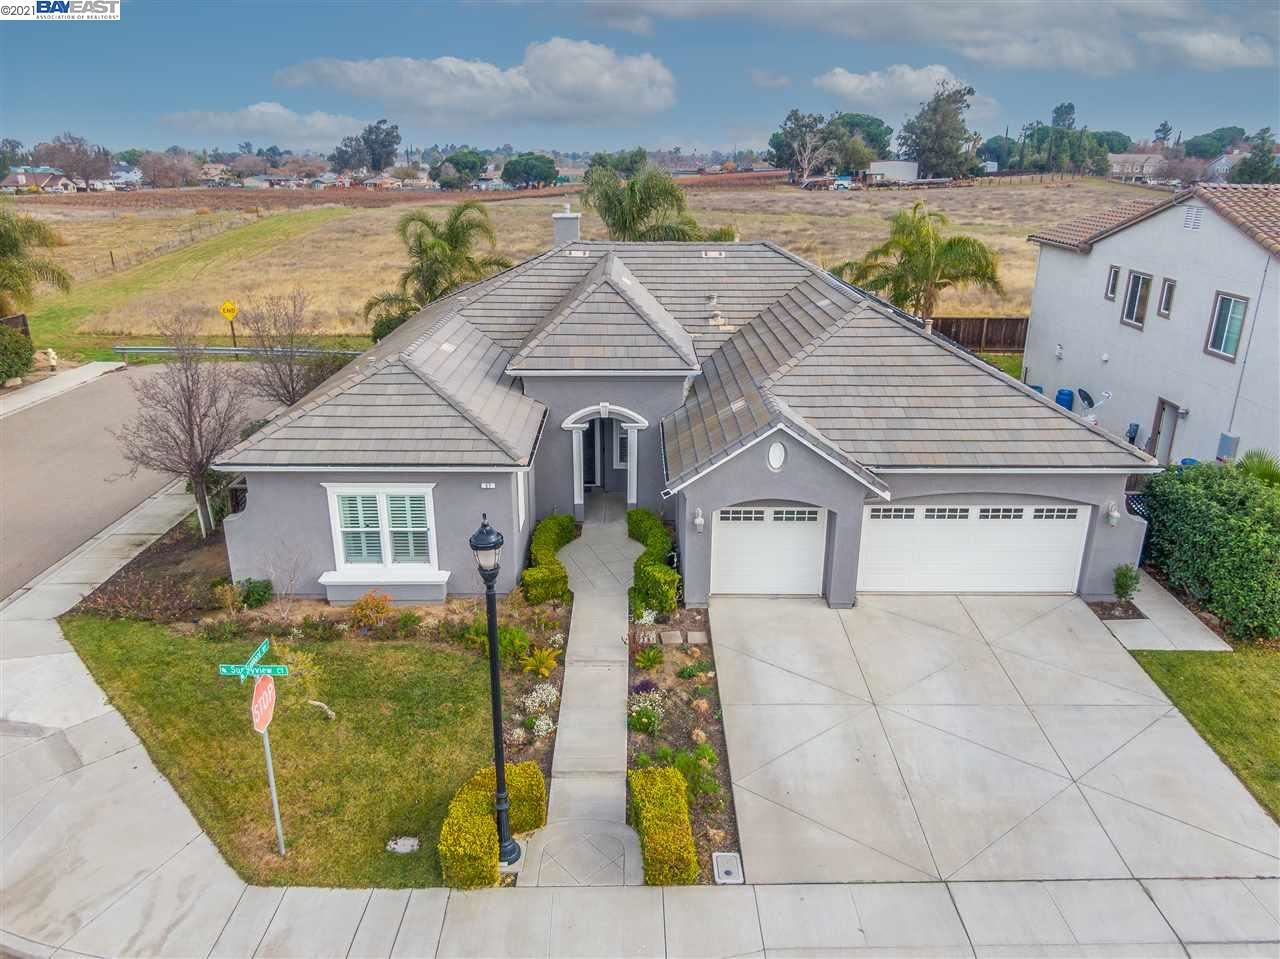 Photo of 57 Sunnyview Ct, OAKLEY, CA 94561 (MLS # 40943746)